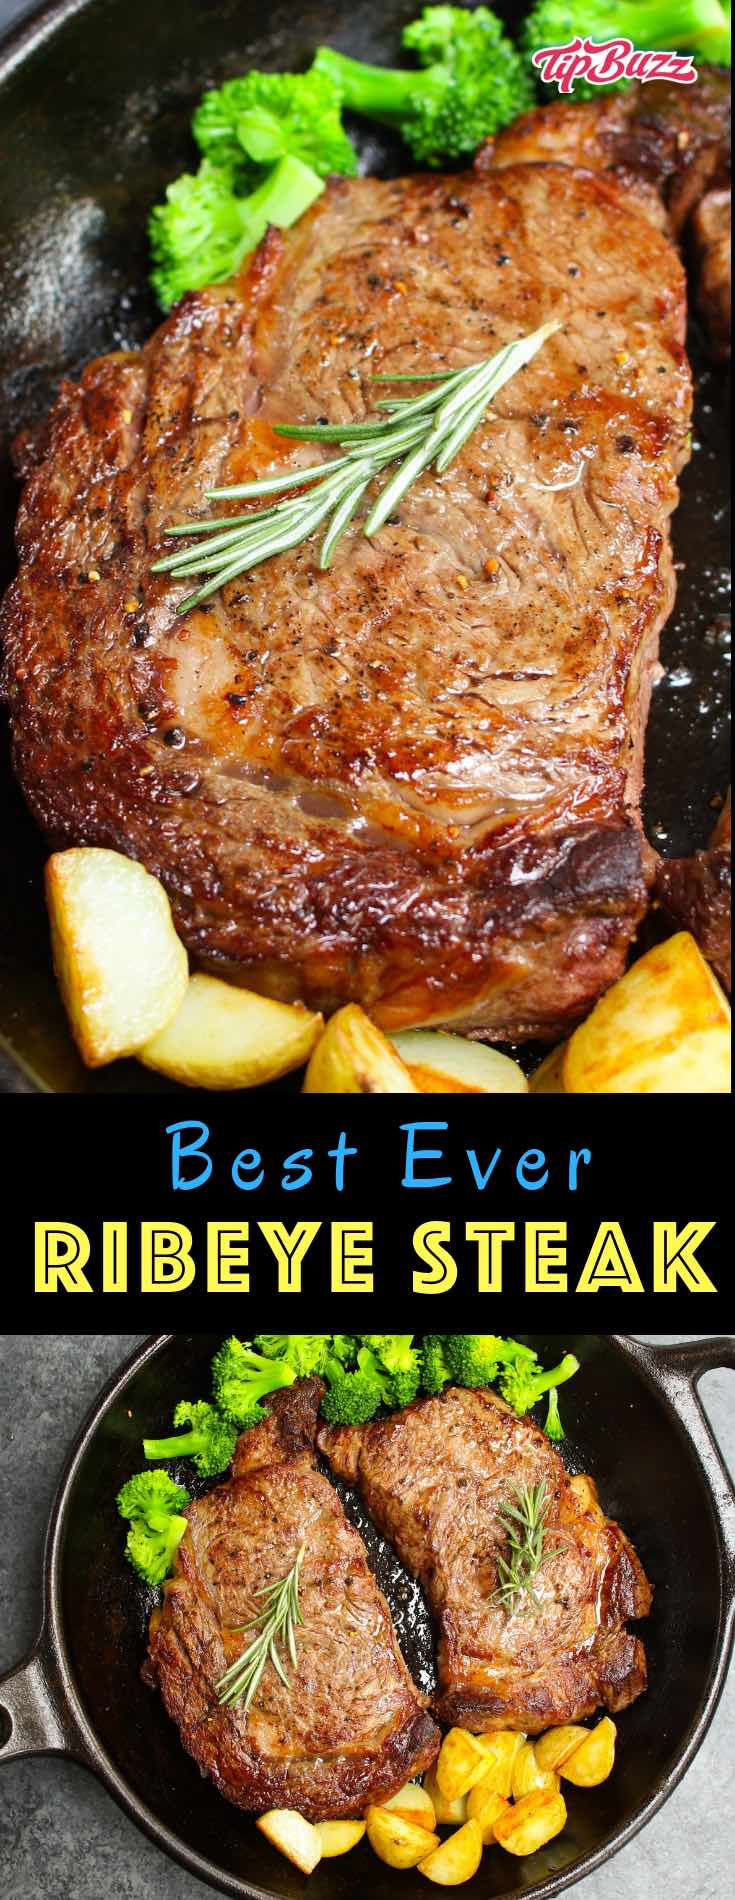 Rib eye steak is a mouthwatering dinner idea when you want to splurge. It's one of the most tender steaks but also the most flavorful! It only takes 20 minutes to make on a stovetop for a memorable dinner that's easy to prepare.